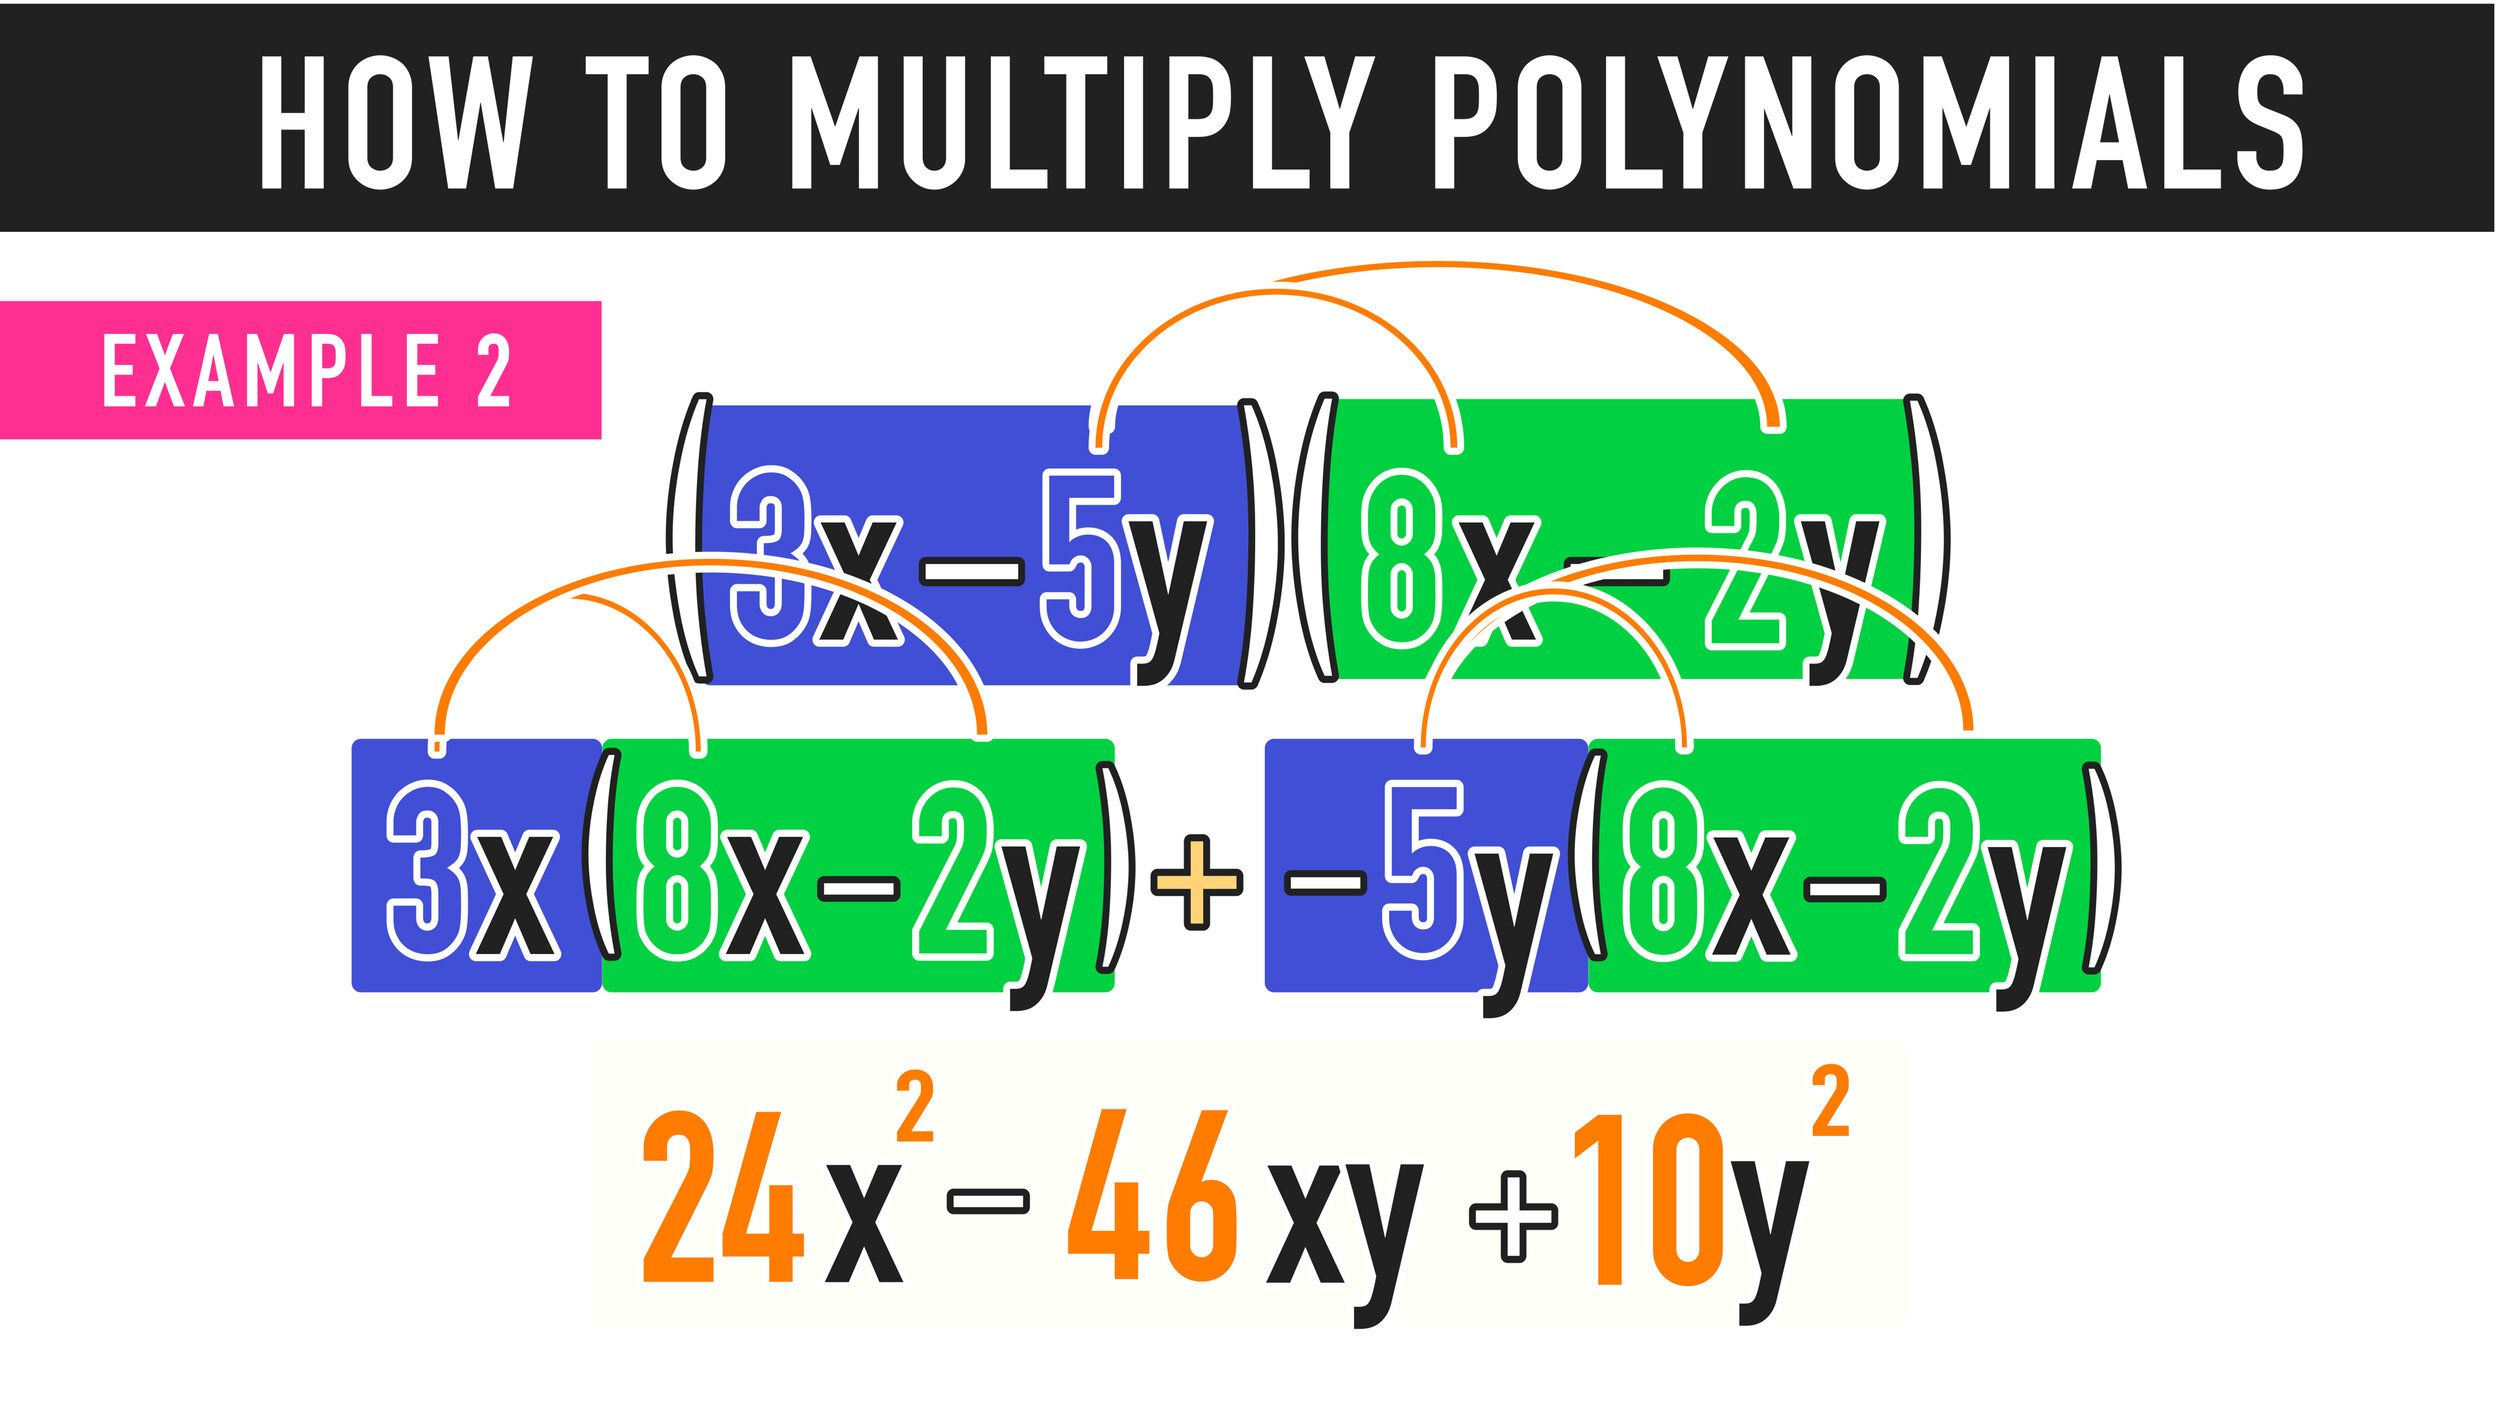 Multiplying Polynomials The Complete Guide